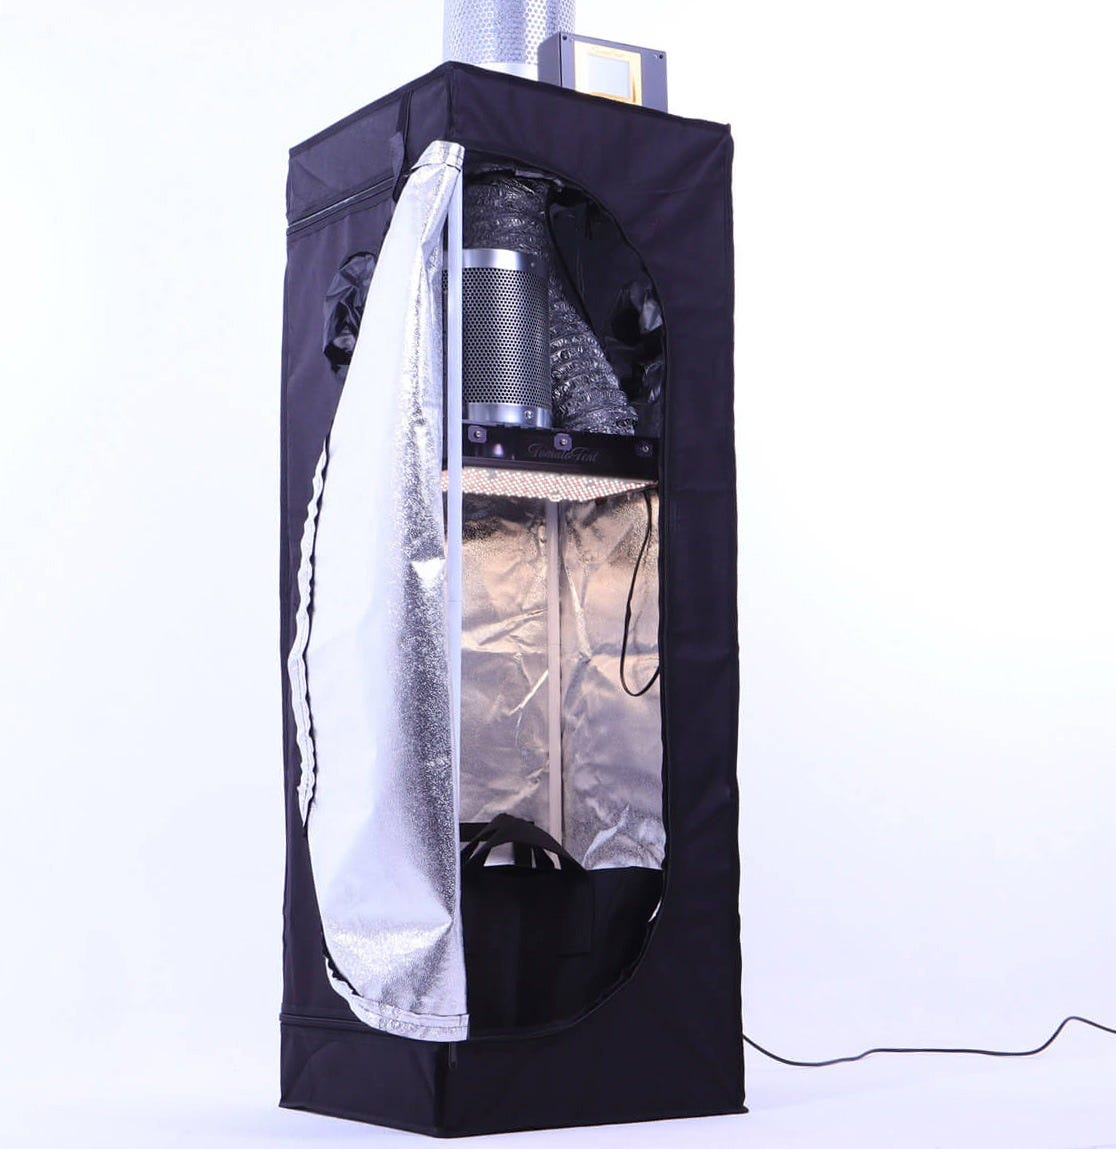 """TomatoTent - Intelligent Mini Grow Tent A small, stealthy Grow Tent with intelligent grow computer that makes sure you succeed. The Computer tells you if the plants need water, and you won't have to check. You won't have to think about temperature and humidity because the computer regulates those within the ideal range. Harvest enough for Yourself and a friend, and don't worry about """"running out"""". Never again get crabby from hours of waiting for that flaky dealer. Grow the Strain for Your needs... Enjoy the Tomatoes right for you… now you are making your own best medicine. Has an oversized Air filter, so it won't Stink up your house. Even unexpected guests (like your in-laws or the alcohol drinking neighbor) won't smell a thing. On top of that, the speed-controlled fan will help the filters work 100 %. (There is activated carbon inside the filter and air moves through them SLOWLY … and the stuff has enough time to work). Very Small Dimensions 1.3 x 1.3 x 4.4 ft.Hide it in a wardrobe or closet and it's out-of-sight. With the 2nd filter on top its 5.25ft high. Pays for itself. Seasoned pro-growers will get 3 ounces (every 3.5 months). If you're a Beginner-Gardener, you won't rake-in that much…. but chances are you score 1/2 ounce to 1 ounce from your first grow....and that means you'd have the investment back after 2, maybe 3 grow cycles (that you can complete over 1 year). Quieter than a fridge. (I measured it). The fan runs as slow as possible to keep the noise down. TomatoTent won't go on your nerves. Uses 120 Watts of Electricity… your power bill goes up about $US 15 per month. (Based on the average power price in the USA). That's not enough to raise suspicions or to cause """"Bill-Shock"""". Effective Samsung LED Grow light… that will produce a good harvest and earn you the respect of """"PRO-GROWERS"""" (who would scoff at cheap LEDs). Actively Air Cooled Grow Lamp. Your plants won't wilt from 'heat-stroke', even if you live in the swamps of Florida or the Arizona desert."""